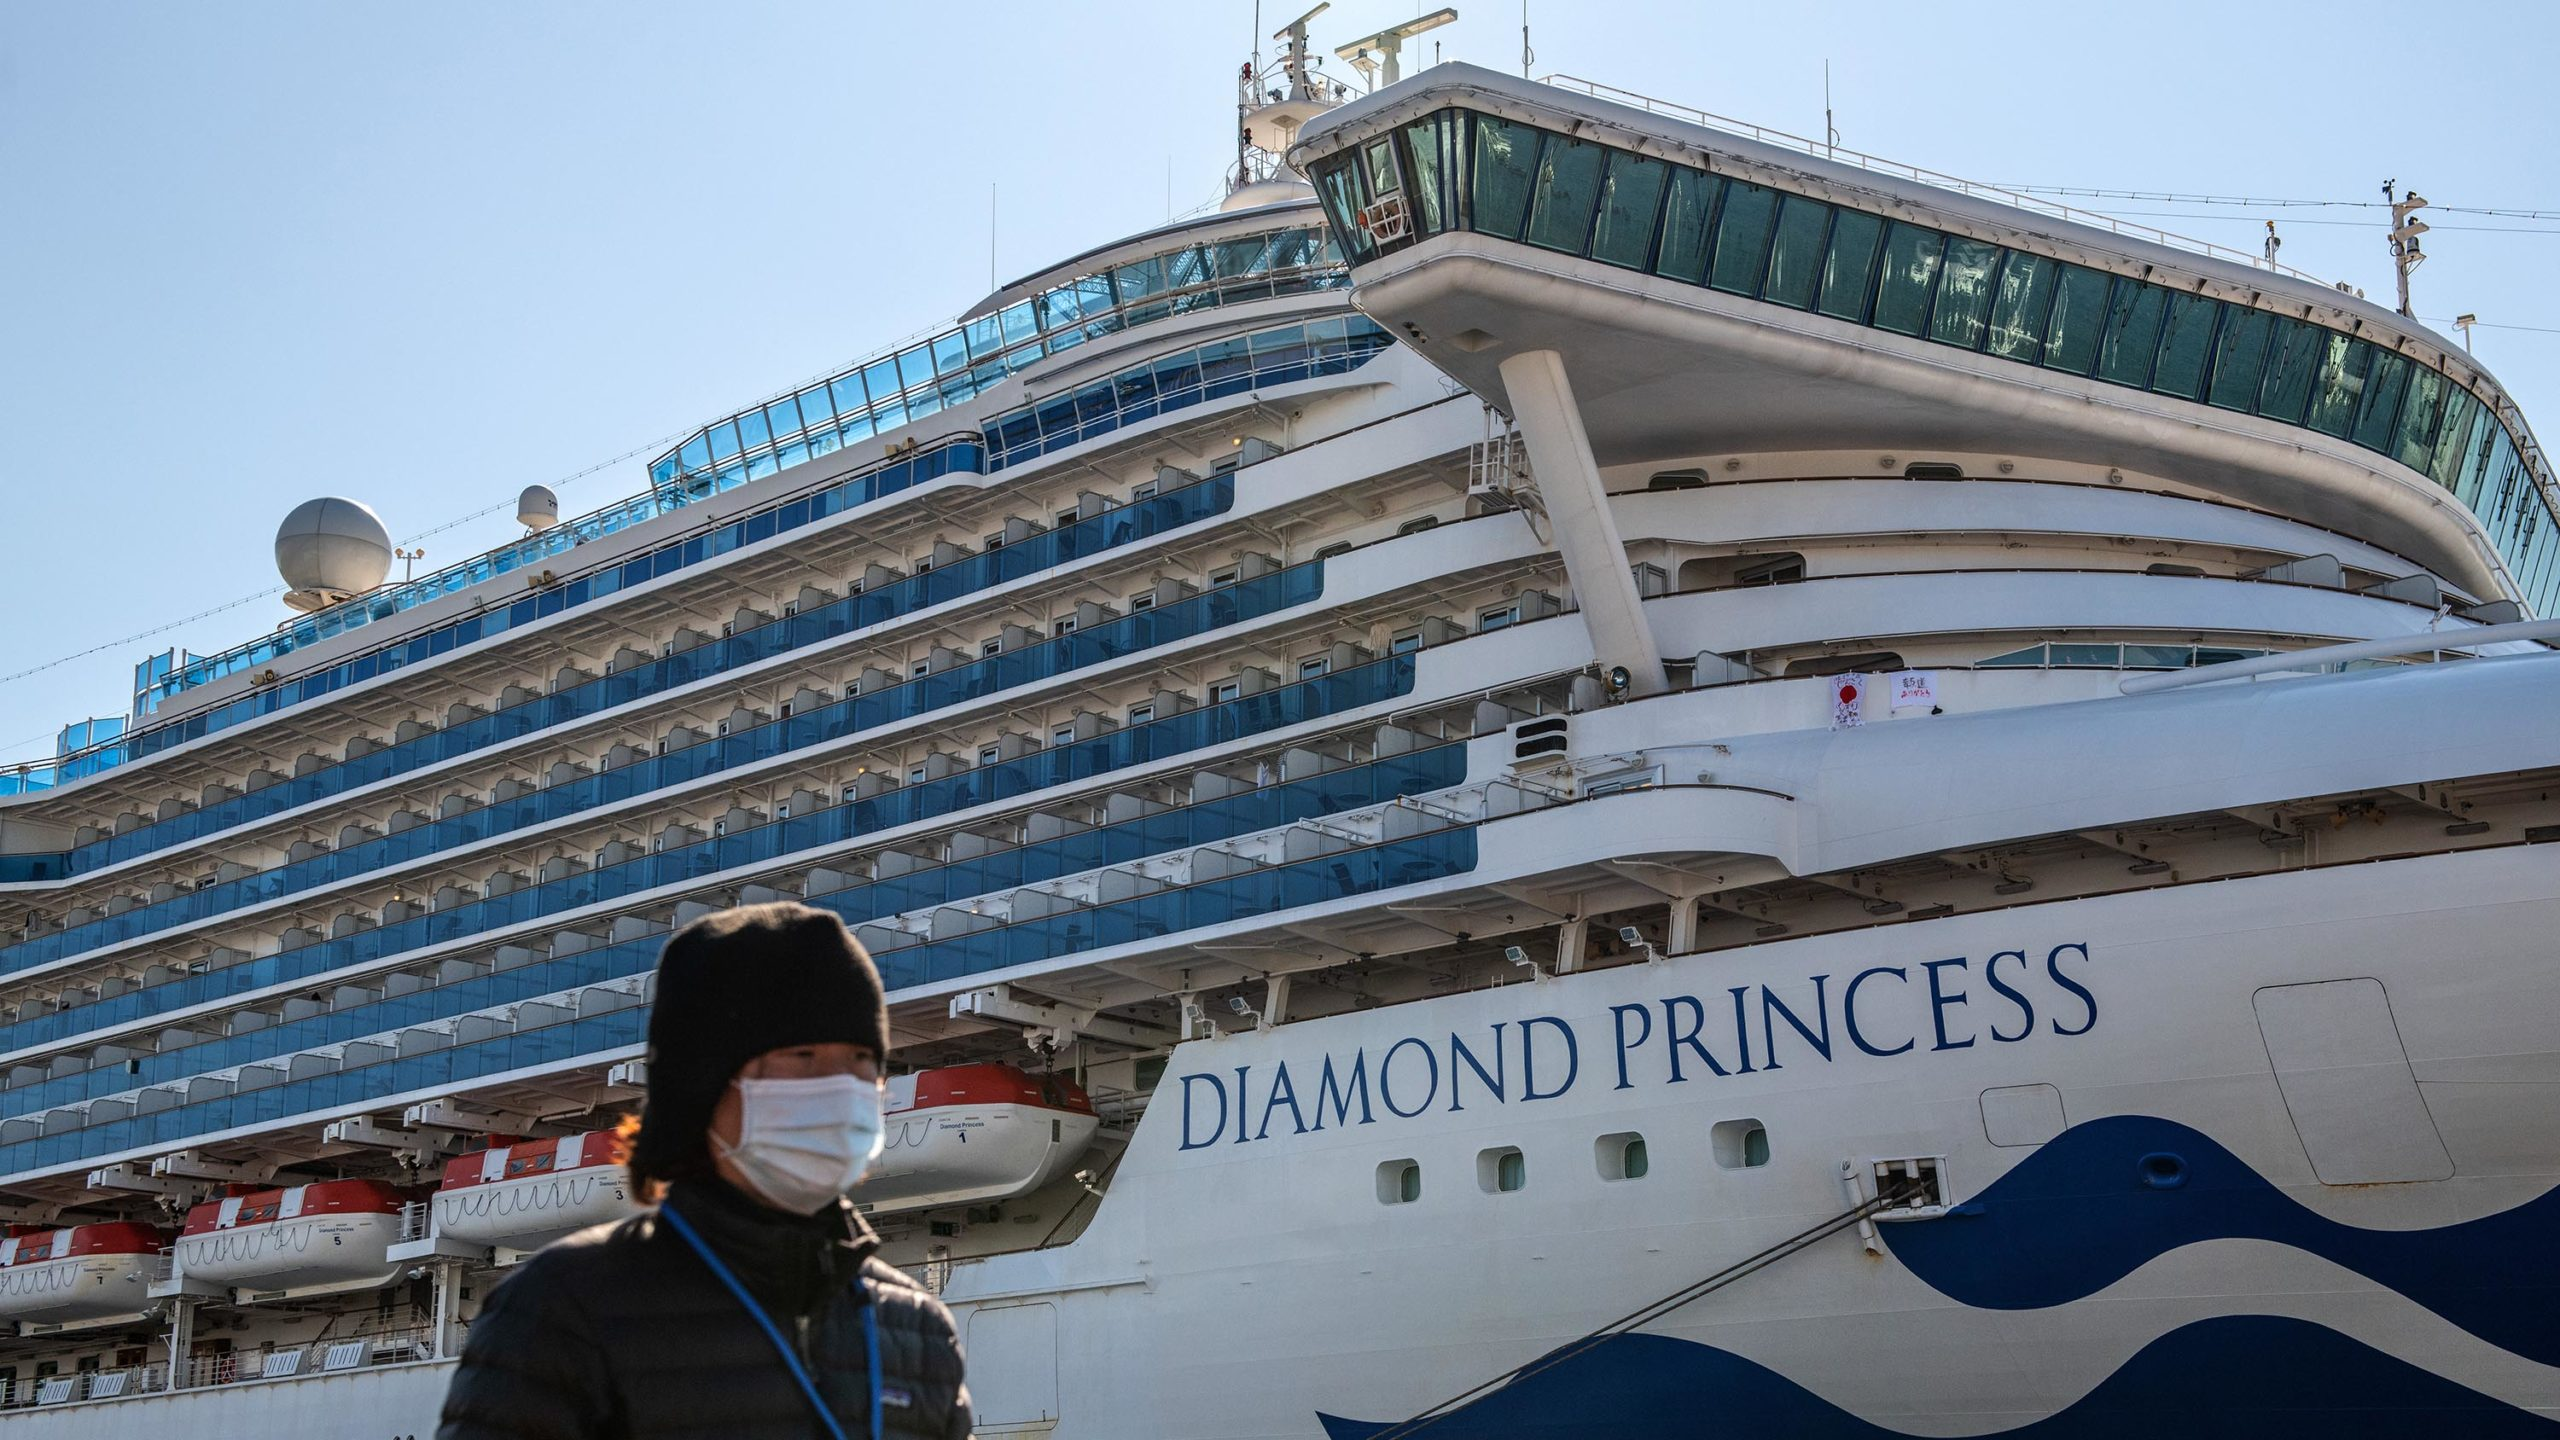 April cruise trends: Significant changes in booking window for cruise travel